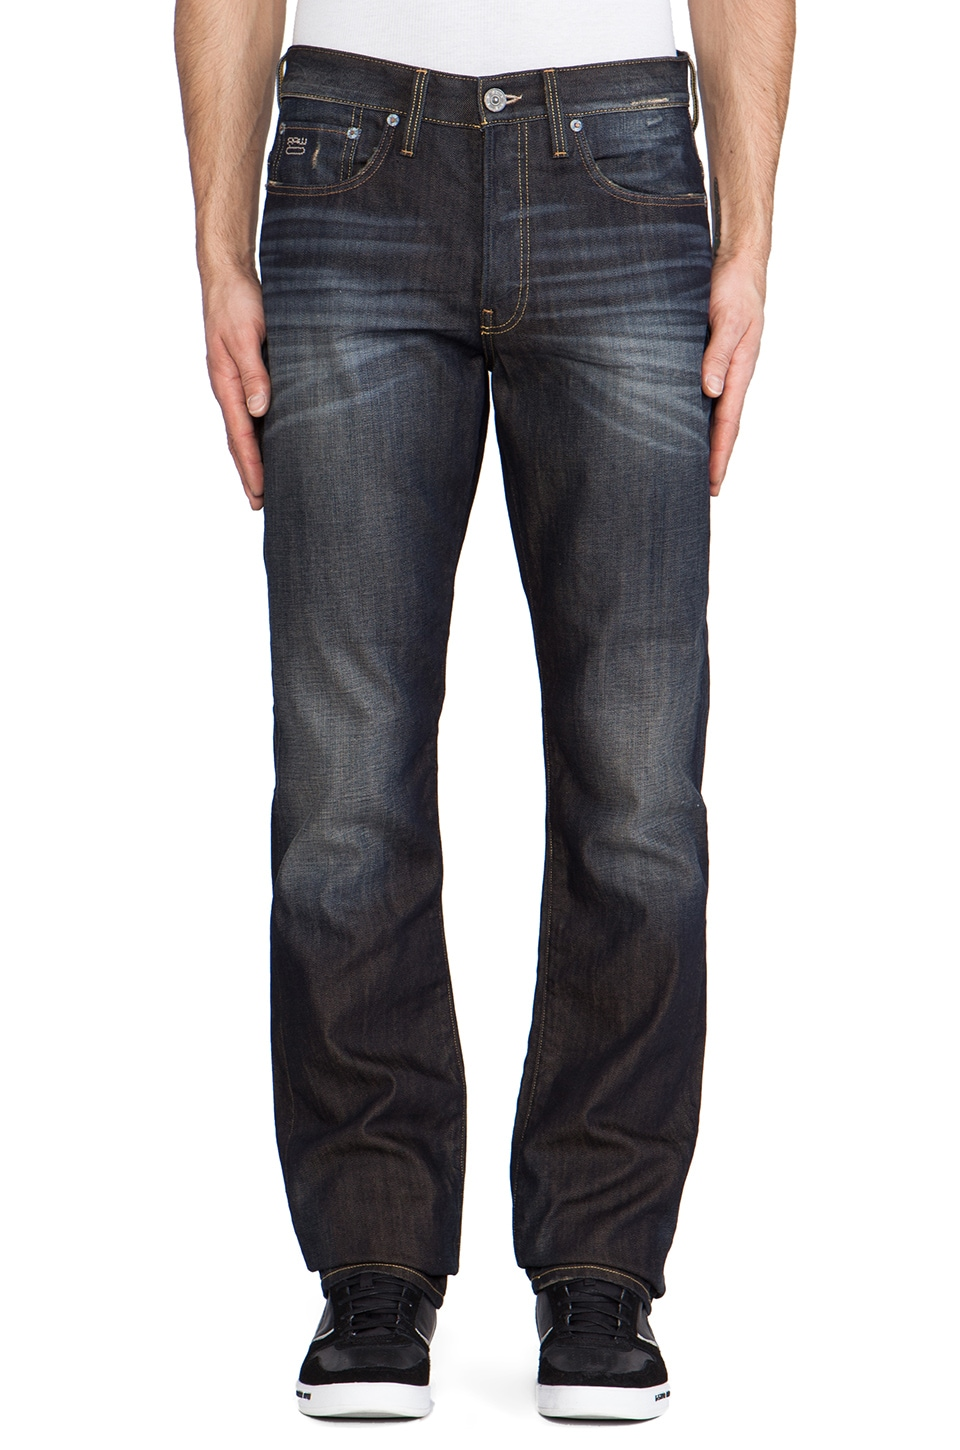 G-Star 3301 Straight Fall Denim in Vintage Aged